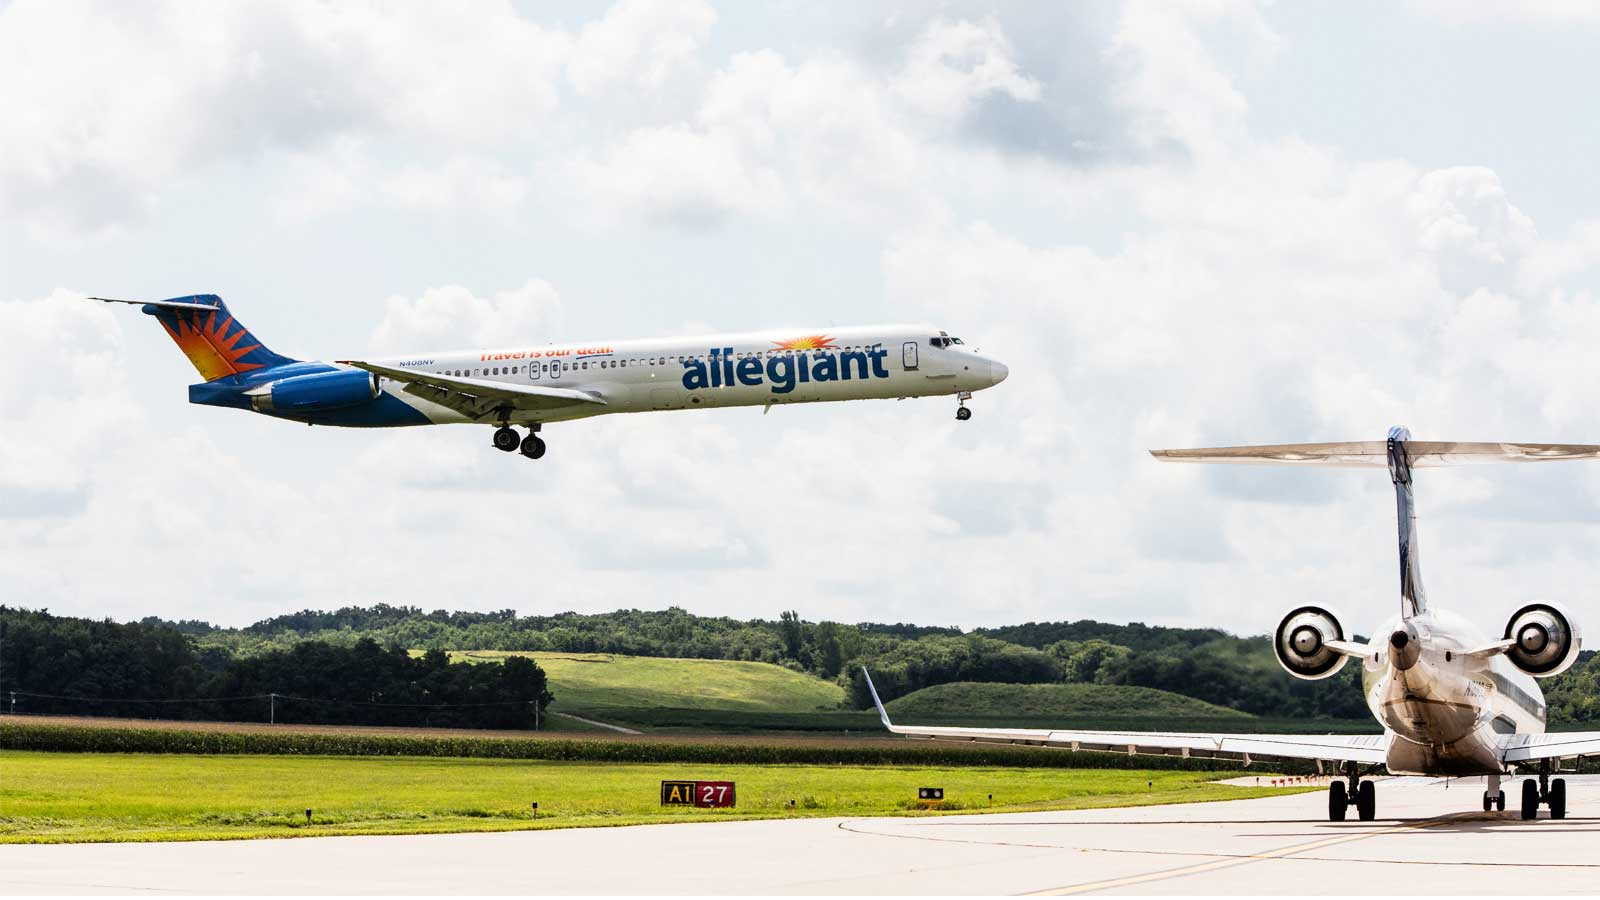 Allegiant plane taking off with other plane on runway